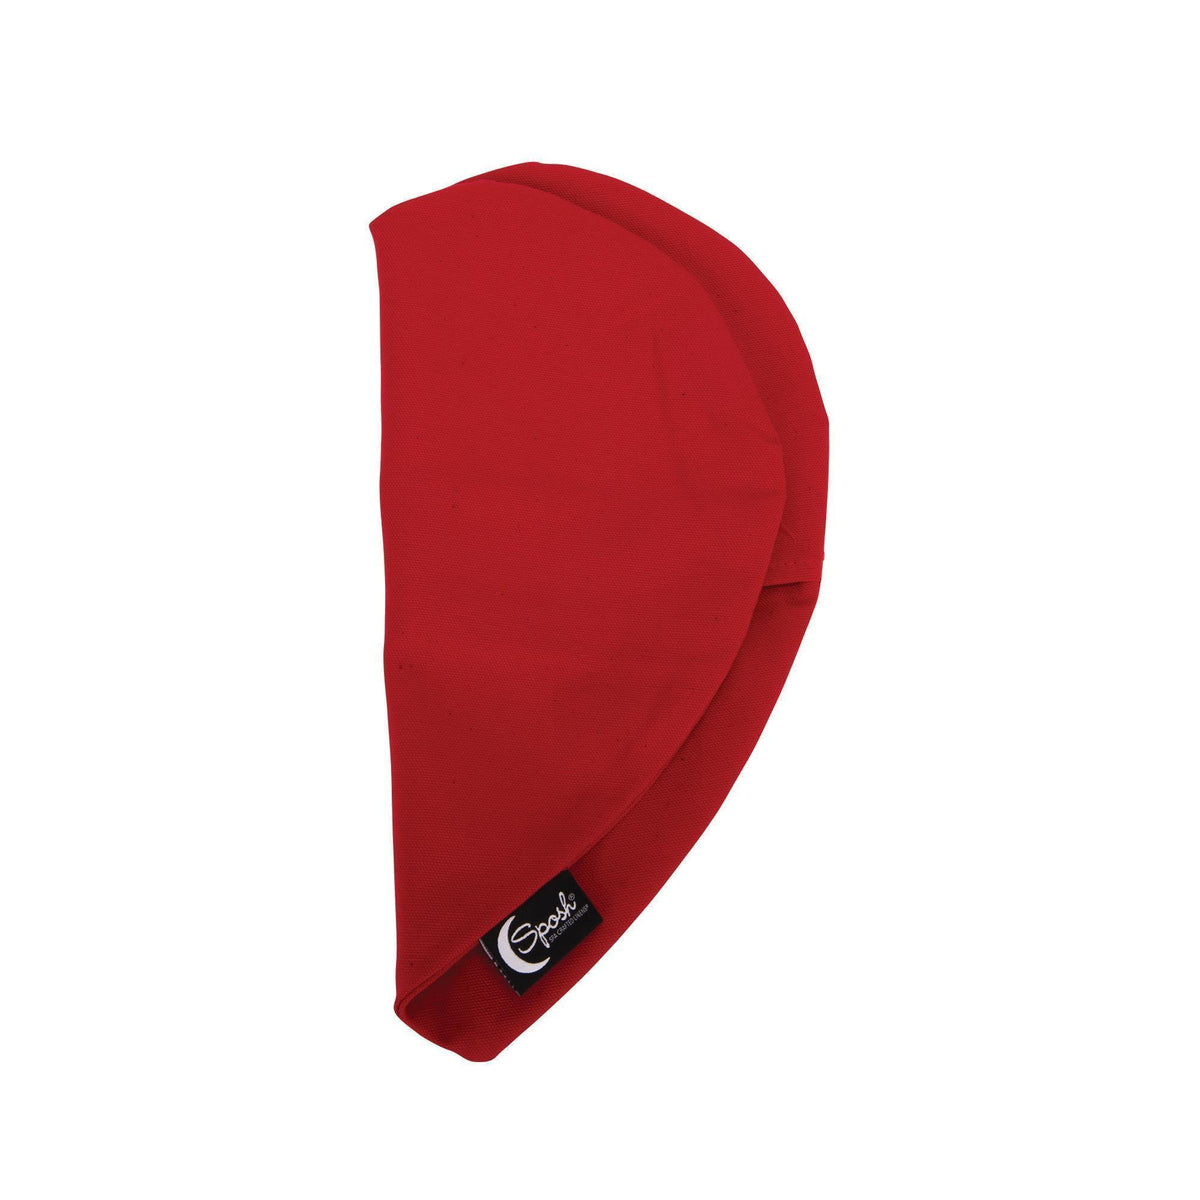 Sposh Heart-Shaped Heat Pack Replacement Covers